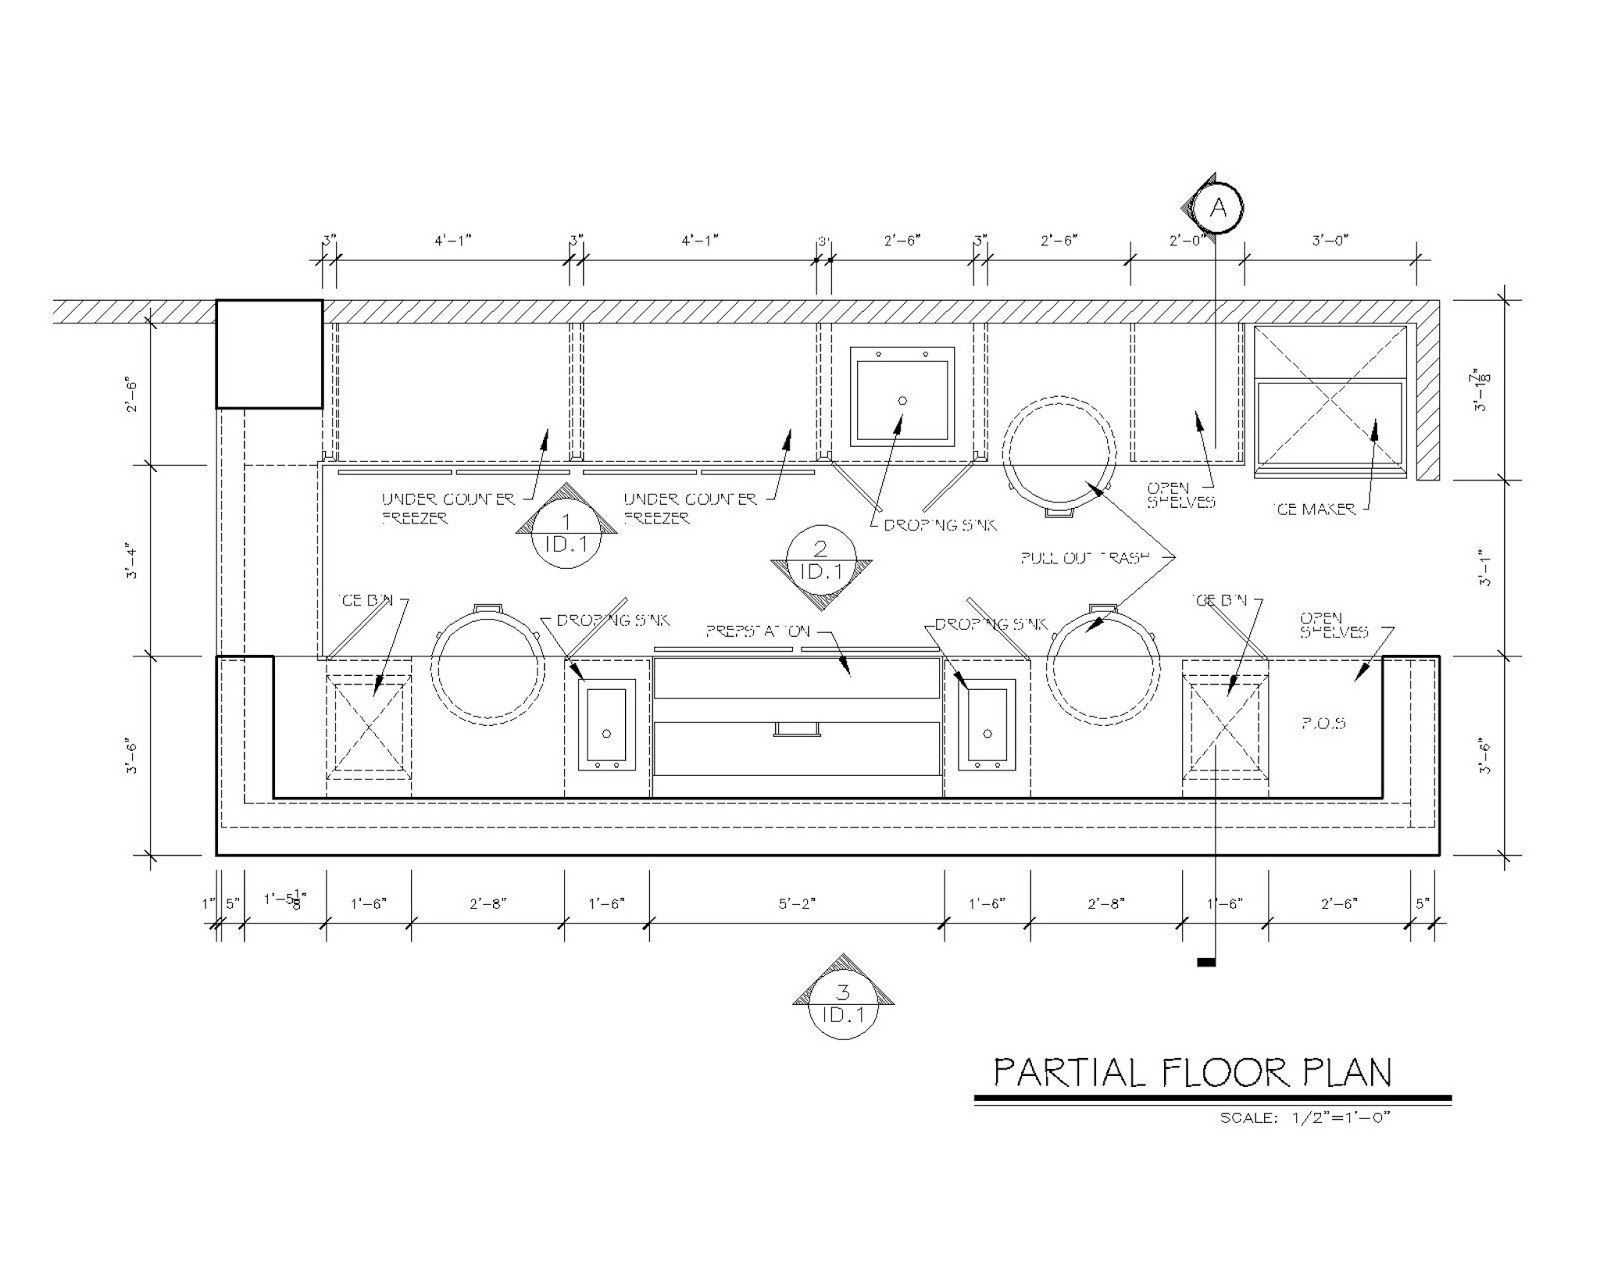 Woodworkers For Delicious Raw Urban Chic Juice Bar Kitchen Plans Kitchen Layout Plans Kitchen Floor Plans